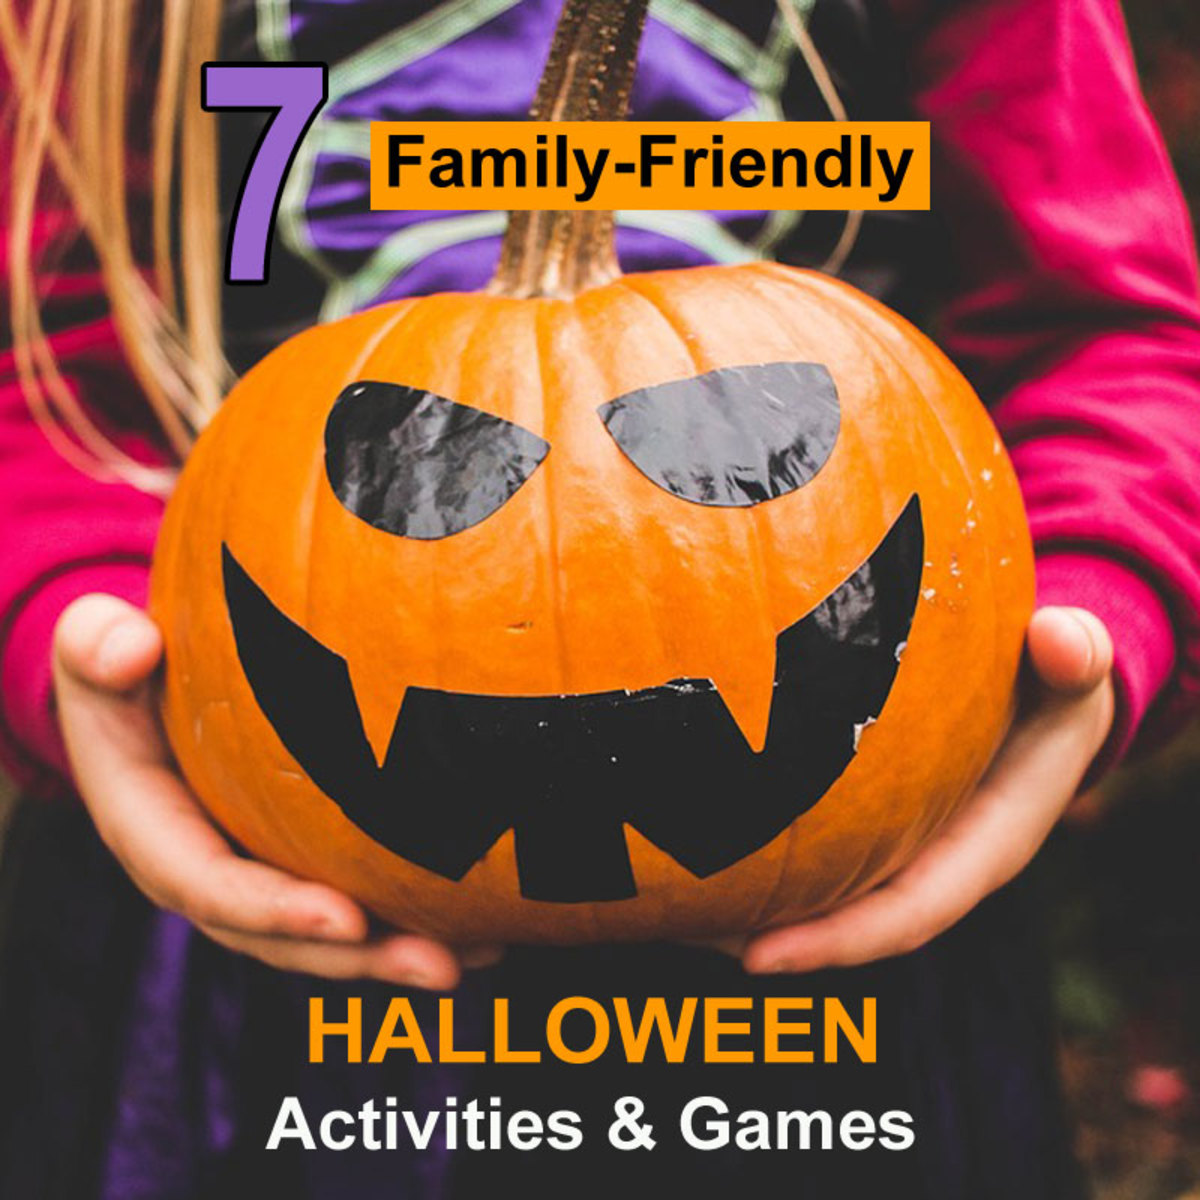 Fun Halloween Party Ideas For Adults.7 Fun And Family Friendly Halloween Activities And Games Holidappy